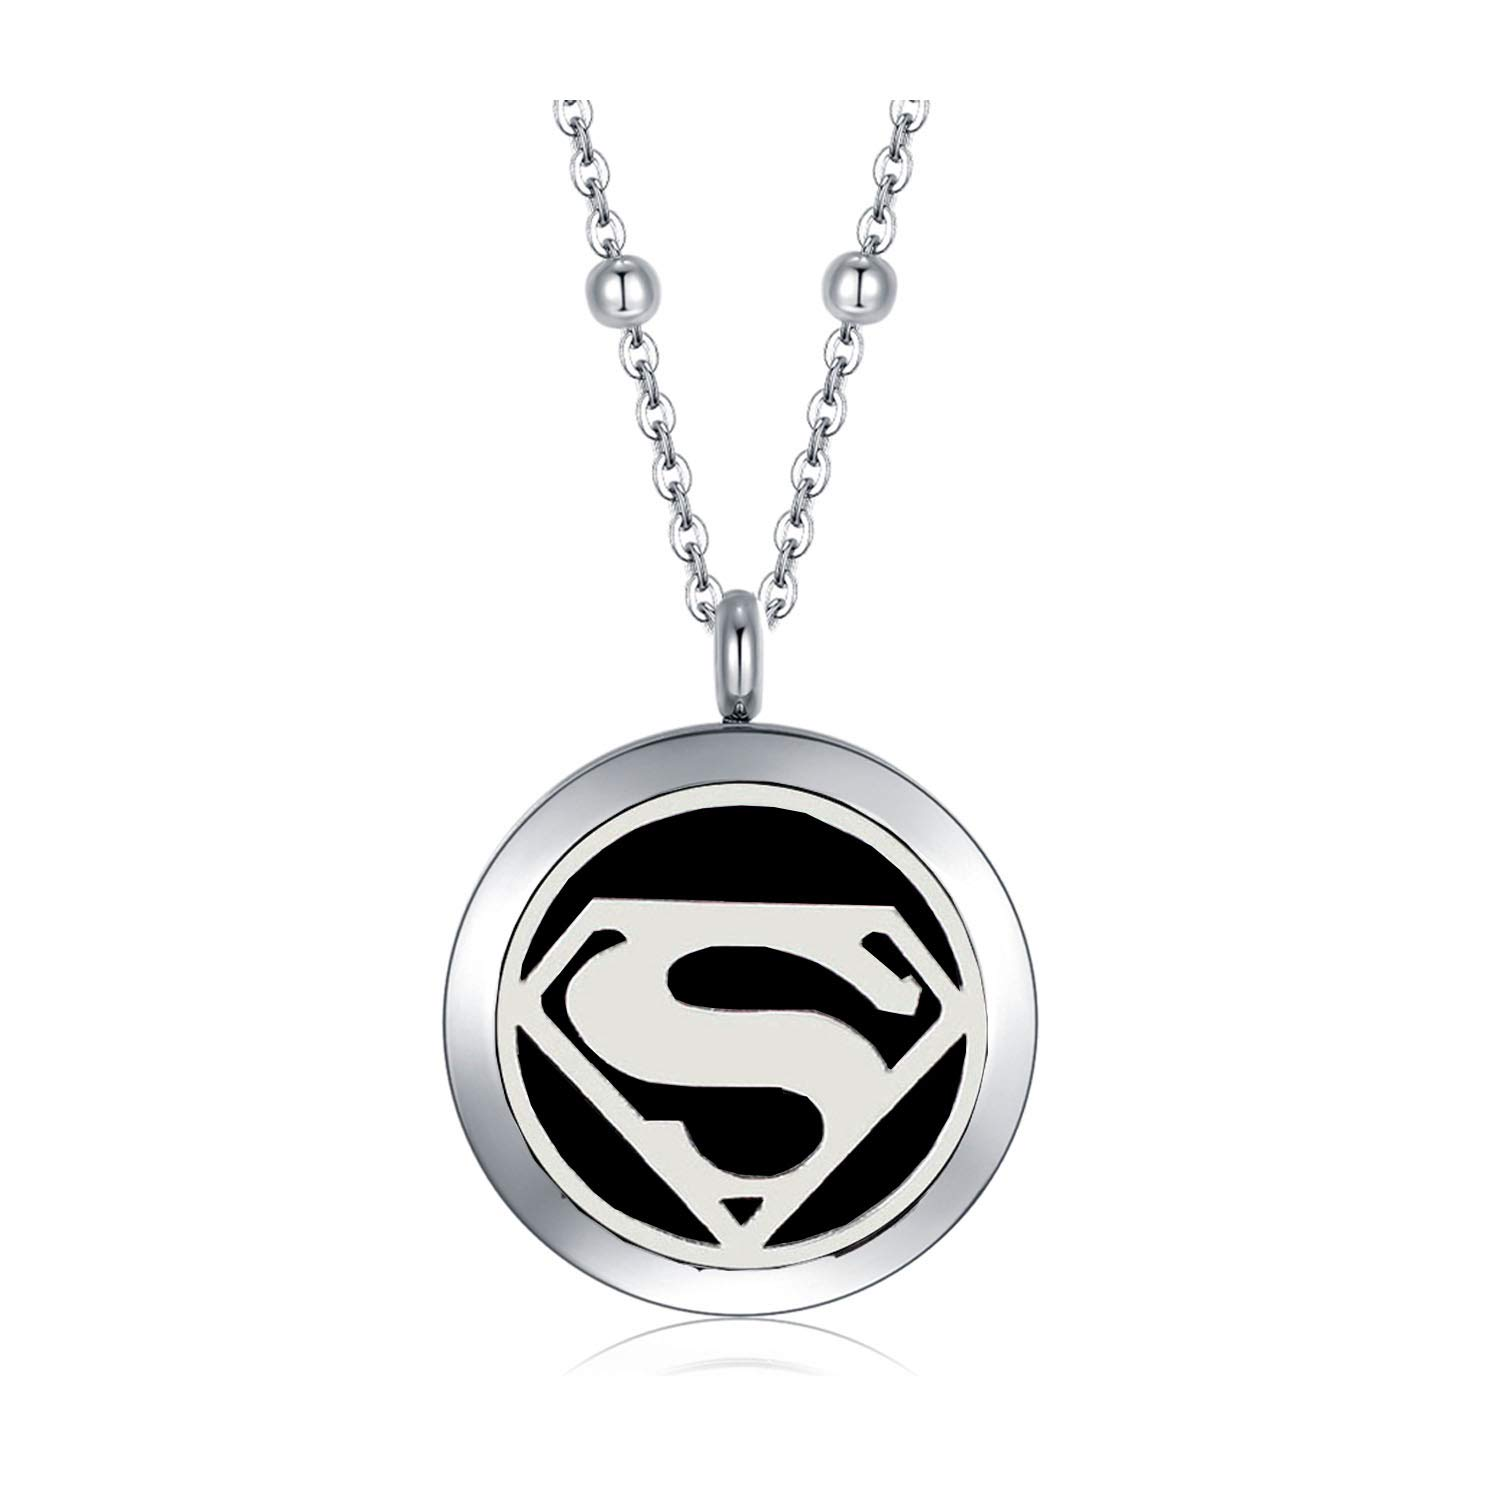 CF100 Small 25mm Superman Aromatherapy Necklace 316L Stainless Steel Essential Oil Diffuser Necklaces with Refill Pads & Beads Chain 20+2